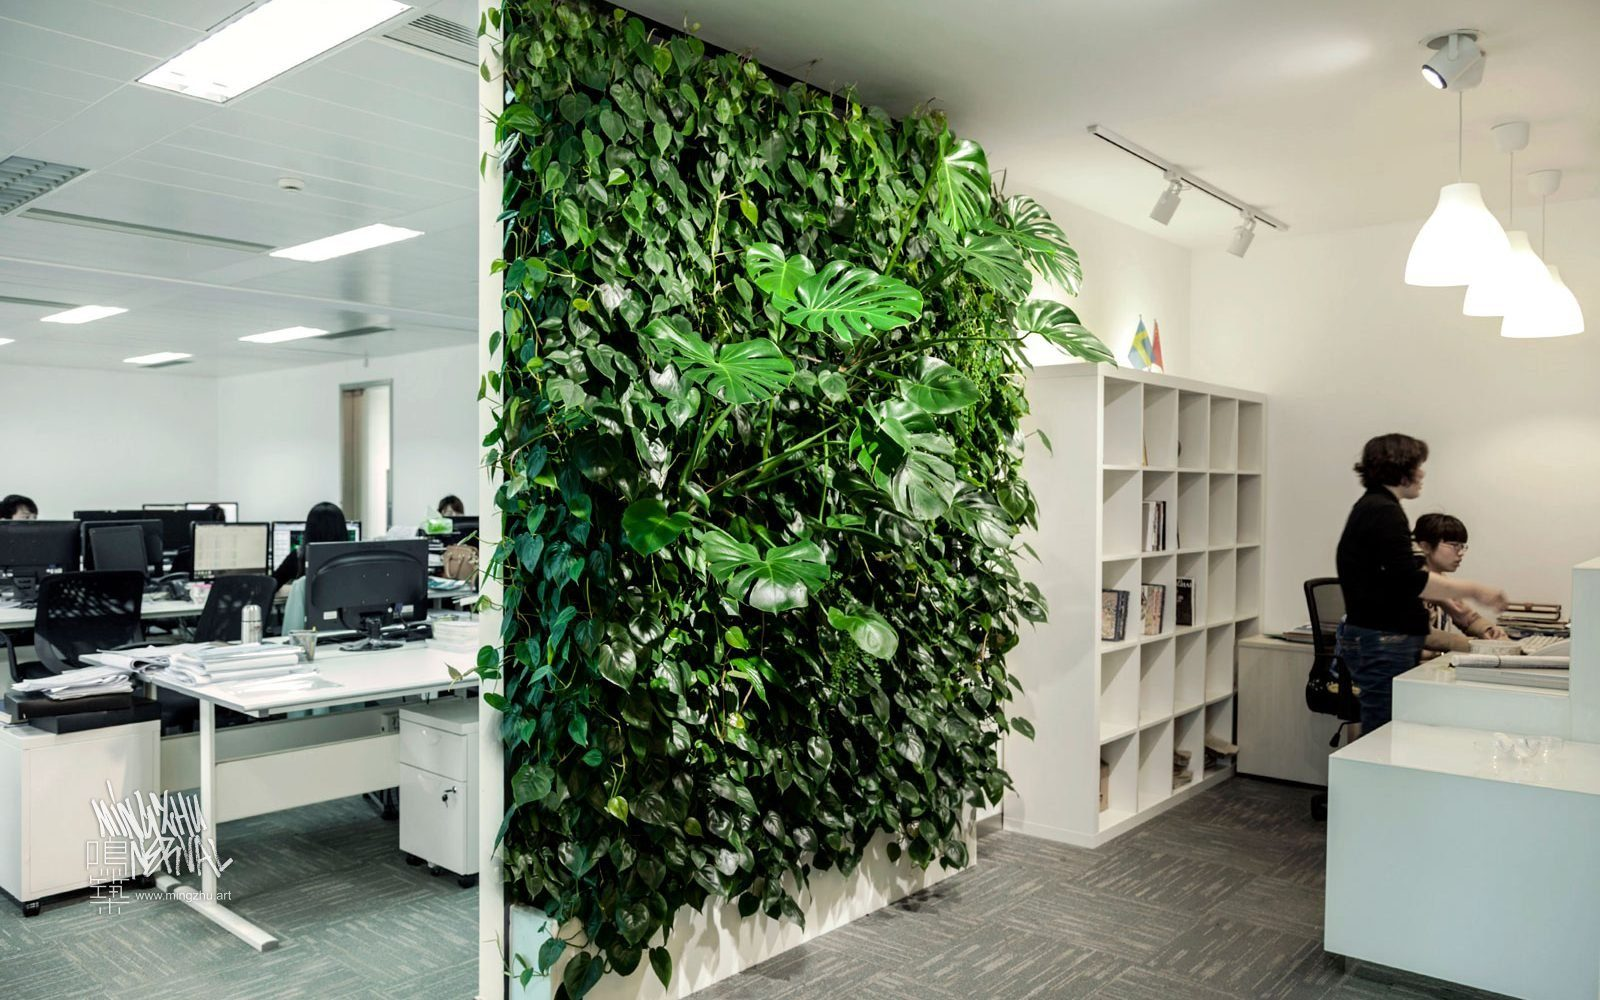 At Mingzhu Nerval, we thrive at creating the most beautiful vertical gardens in the world. For A&A, we created a warm living wall design - Shanghai, 2013.